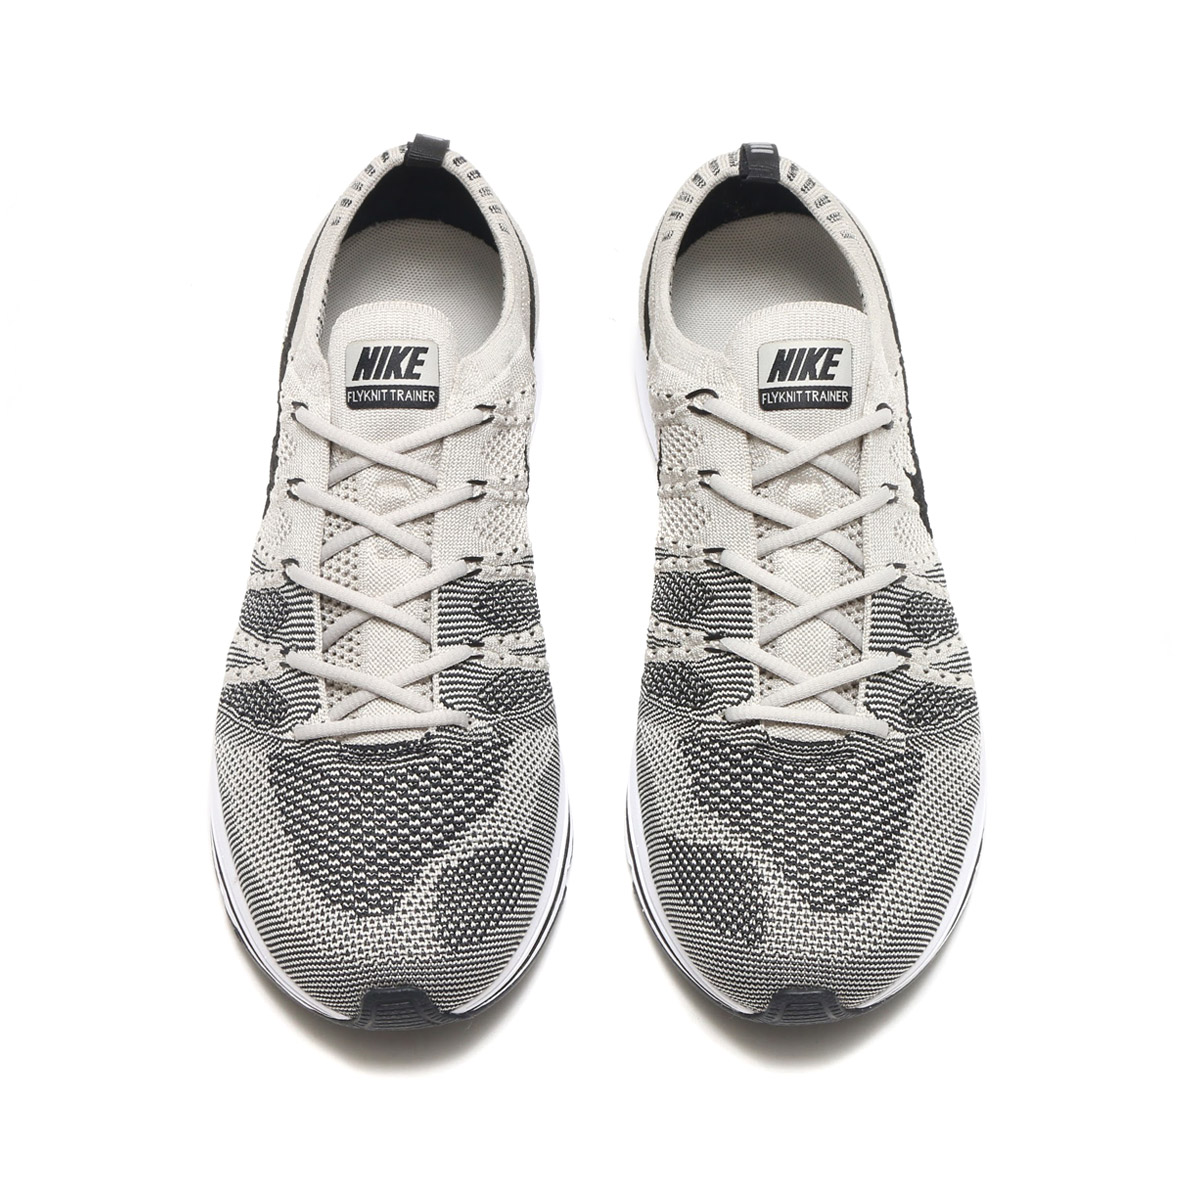 f78fab8a10d6 NIKE FLYKNIT TRAINER (Nike fried food knit trainer) (PALE GREY BLACK-WHITE)  17FA-S